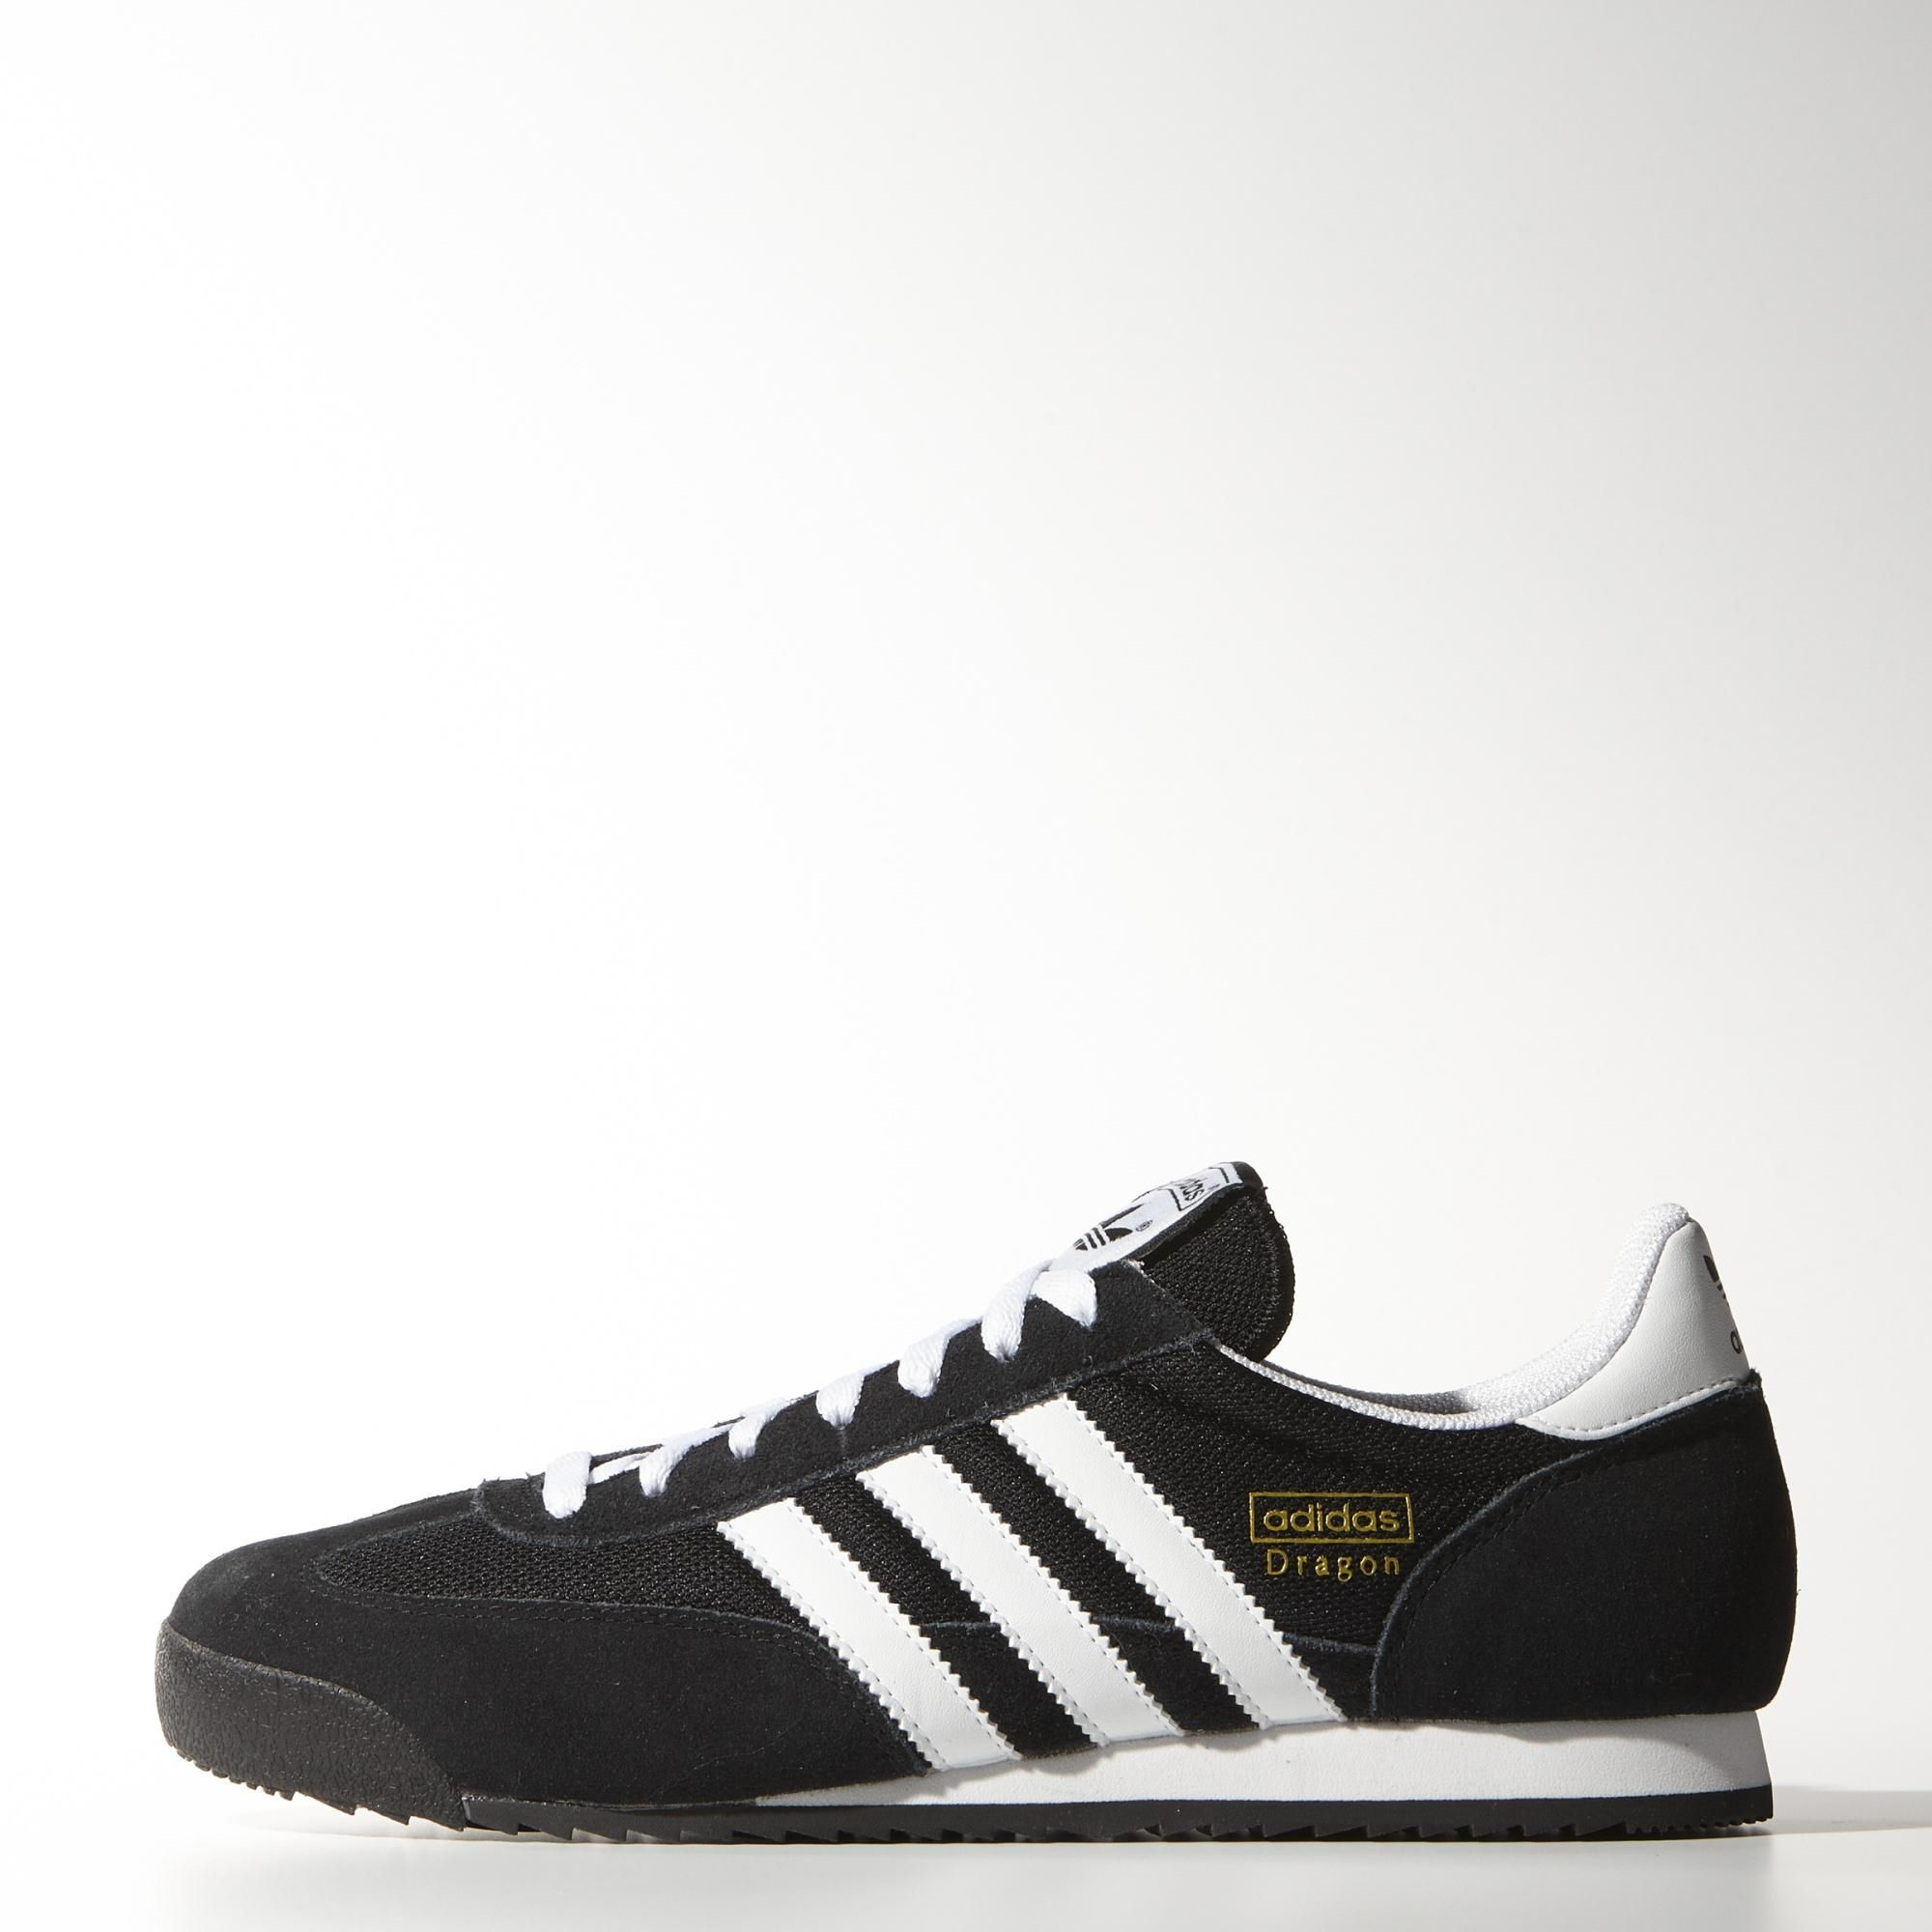 e0ced5d8 The adidas Dragon is a lightweight retro runner that's been a fan favourite  since its introduction in the 70s. This latest version features a suede and  ...